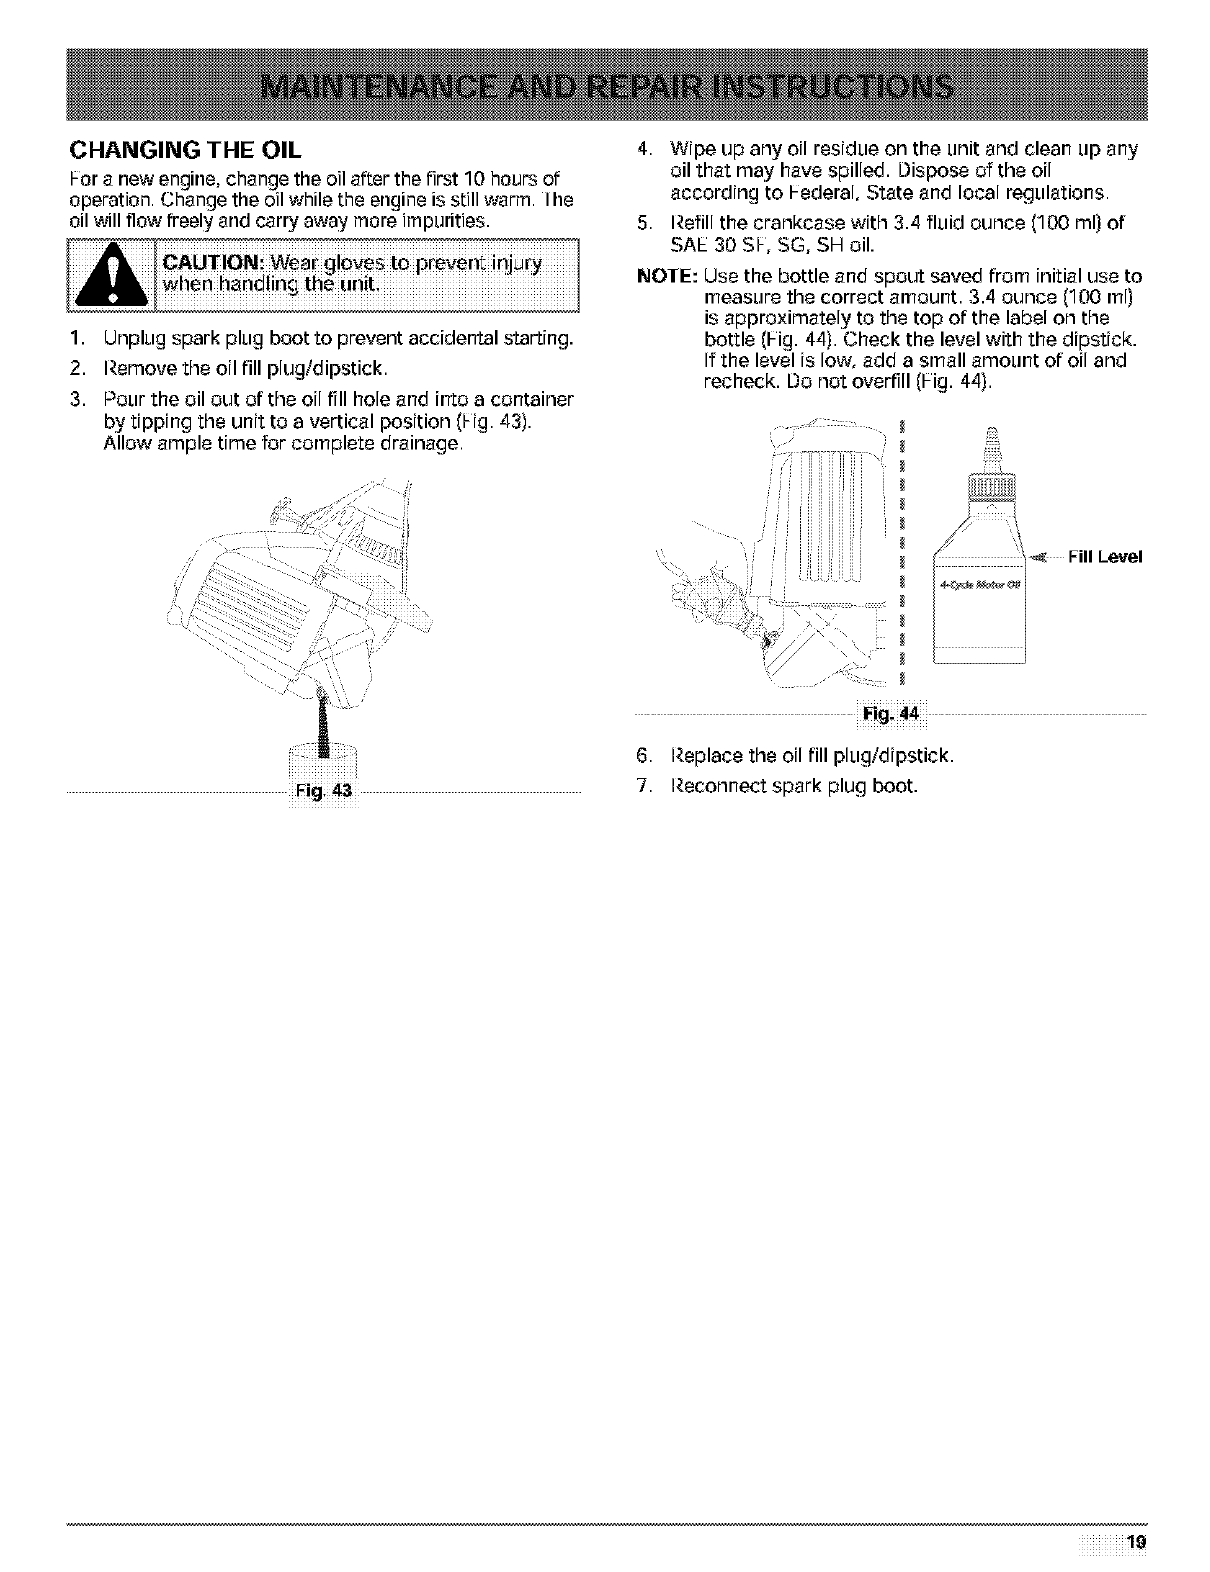 Troybilt 41bdt49c063 user manual 4 cycle gas trimmerbrushcutter changing the oil fandeluxe Choice Image